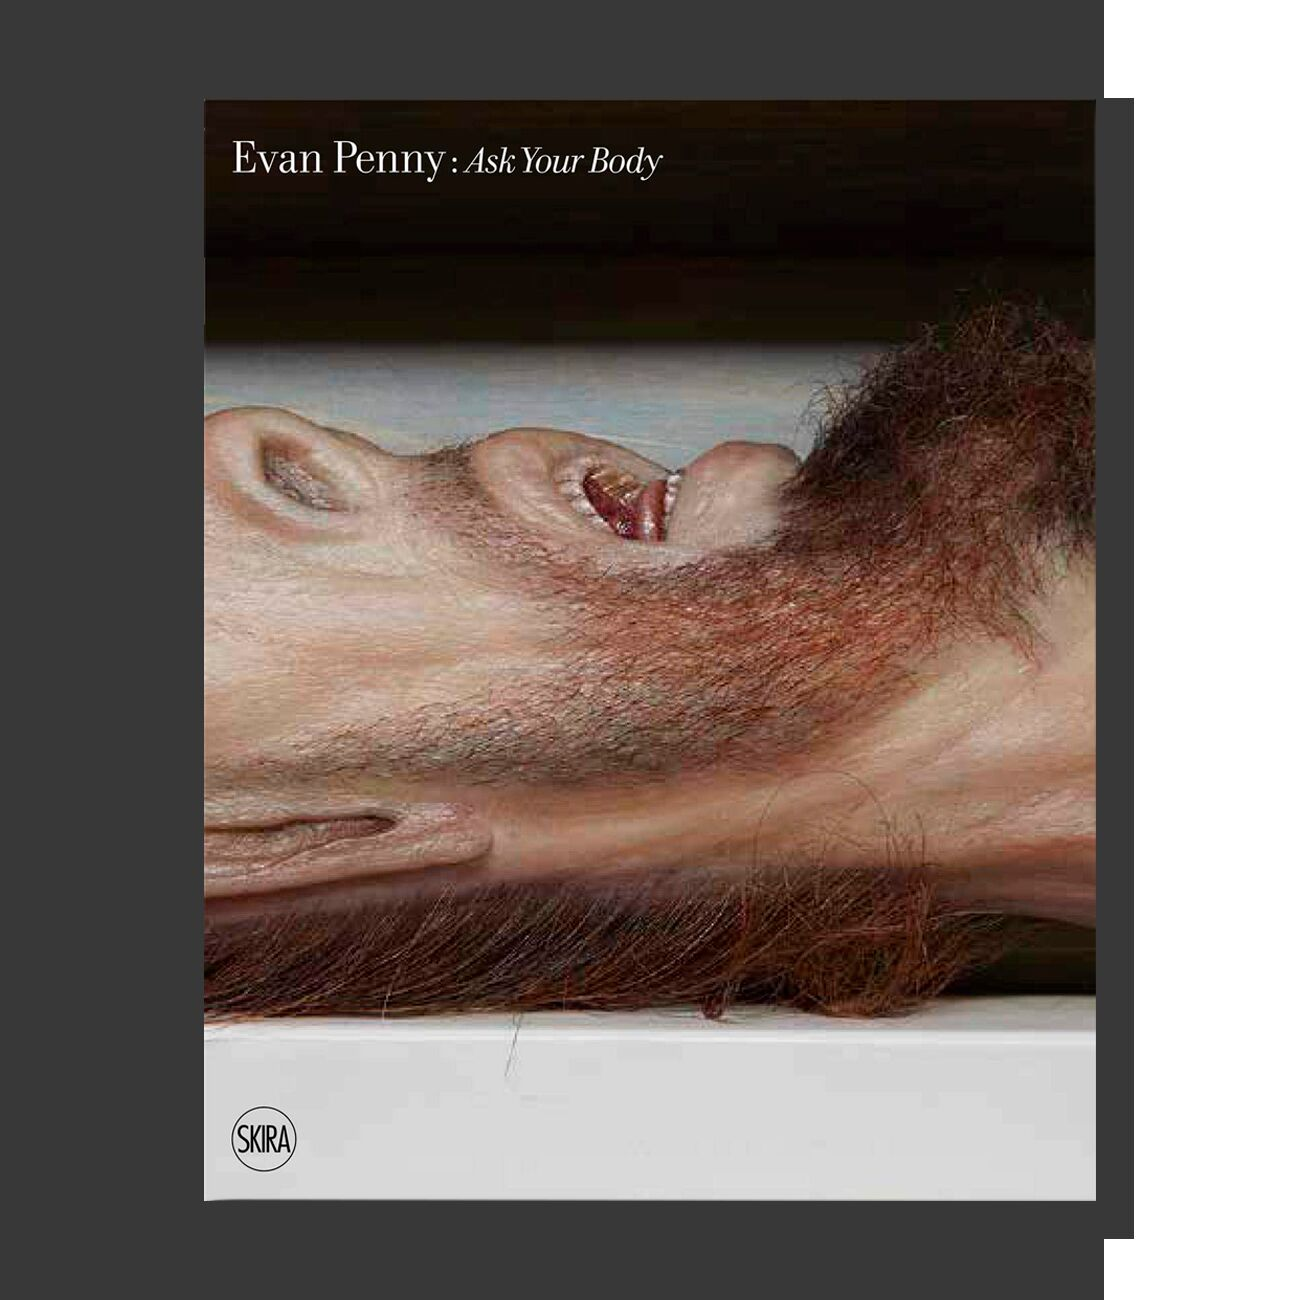 Evan Penny: Ask Your Body